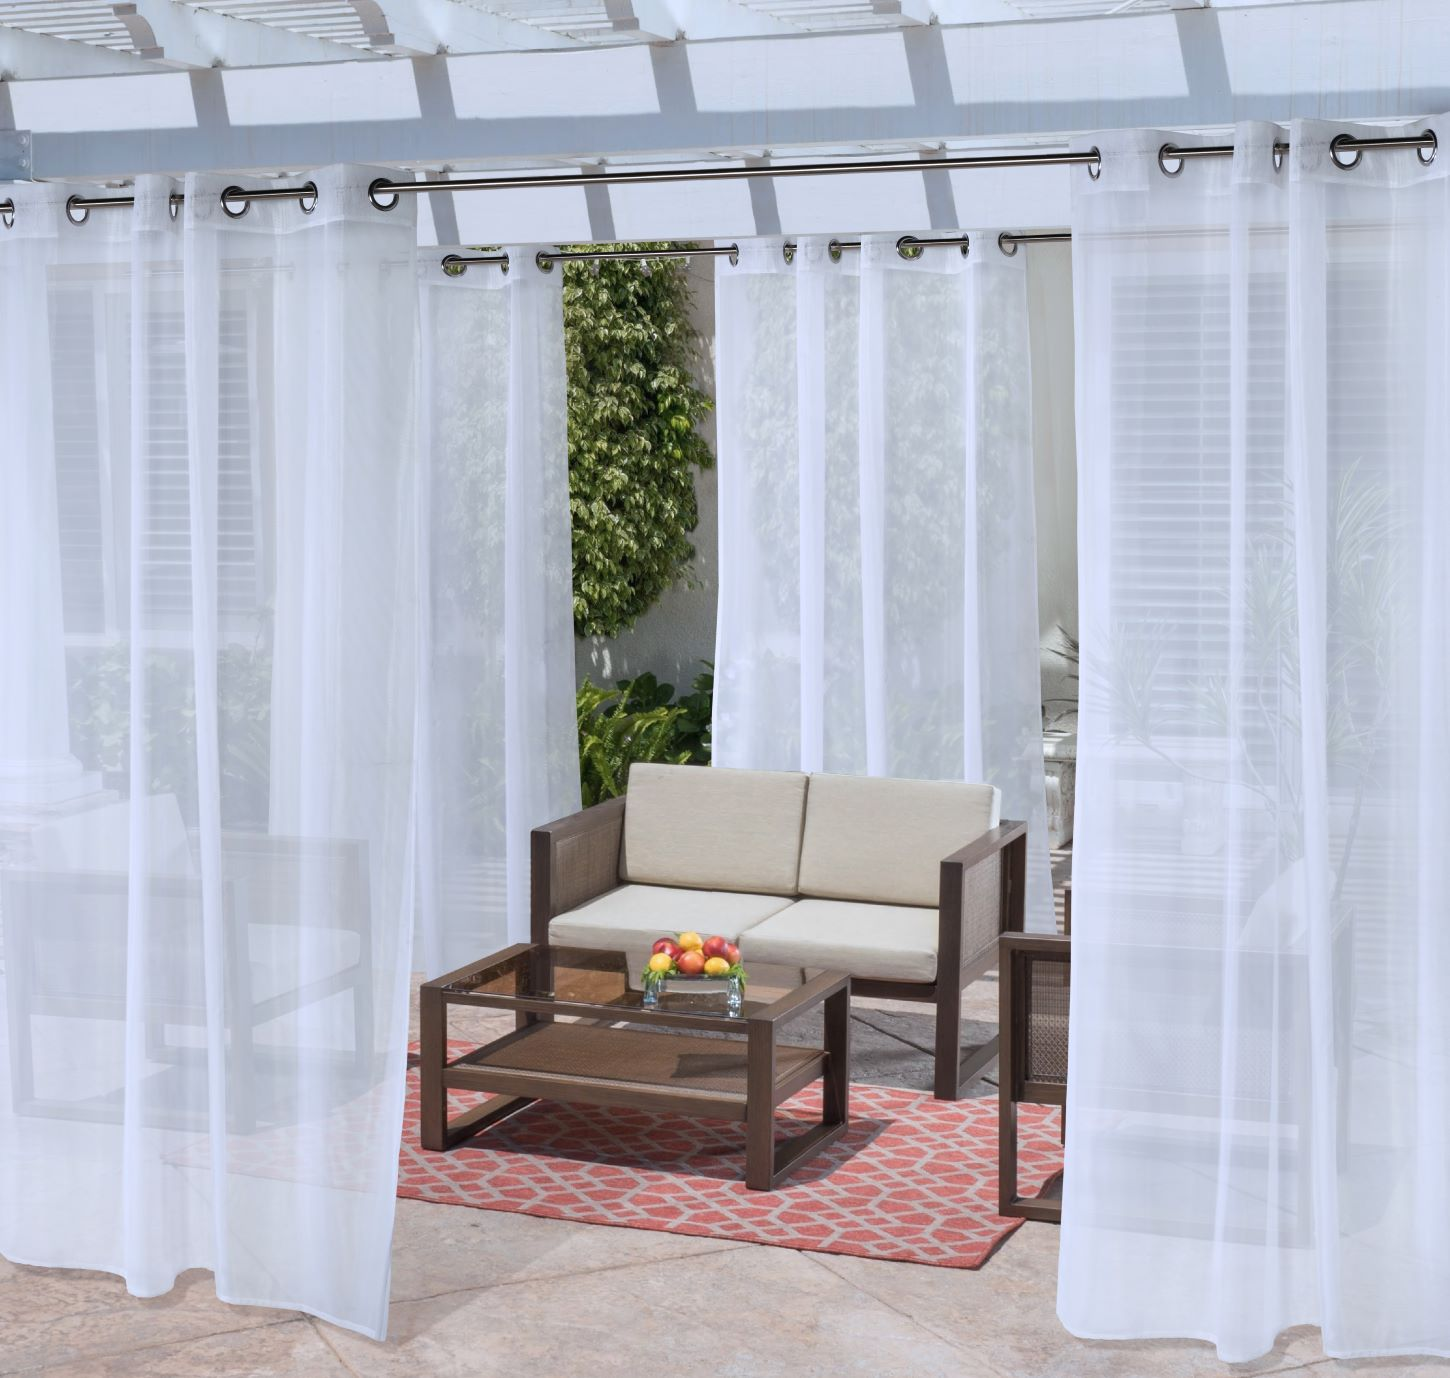 Grey 100 X 84 Outdoor D/écor 71709-188-84-429 Seascapes solid color indoor or outdoor curtains